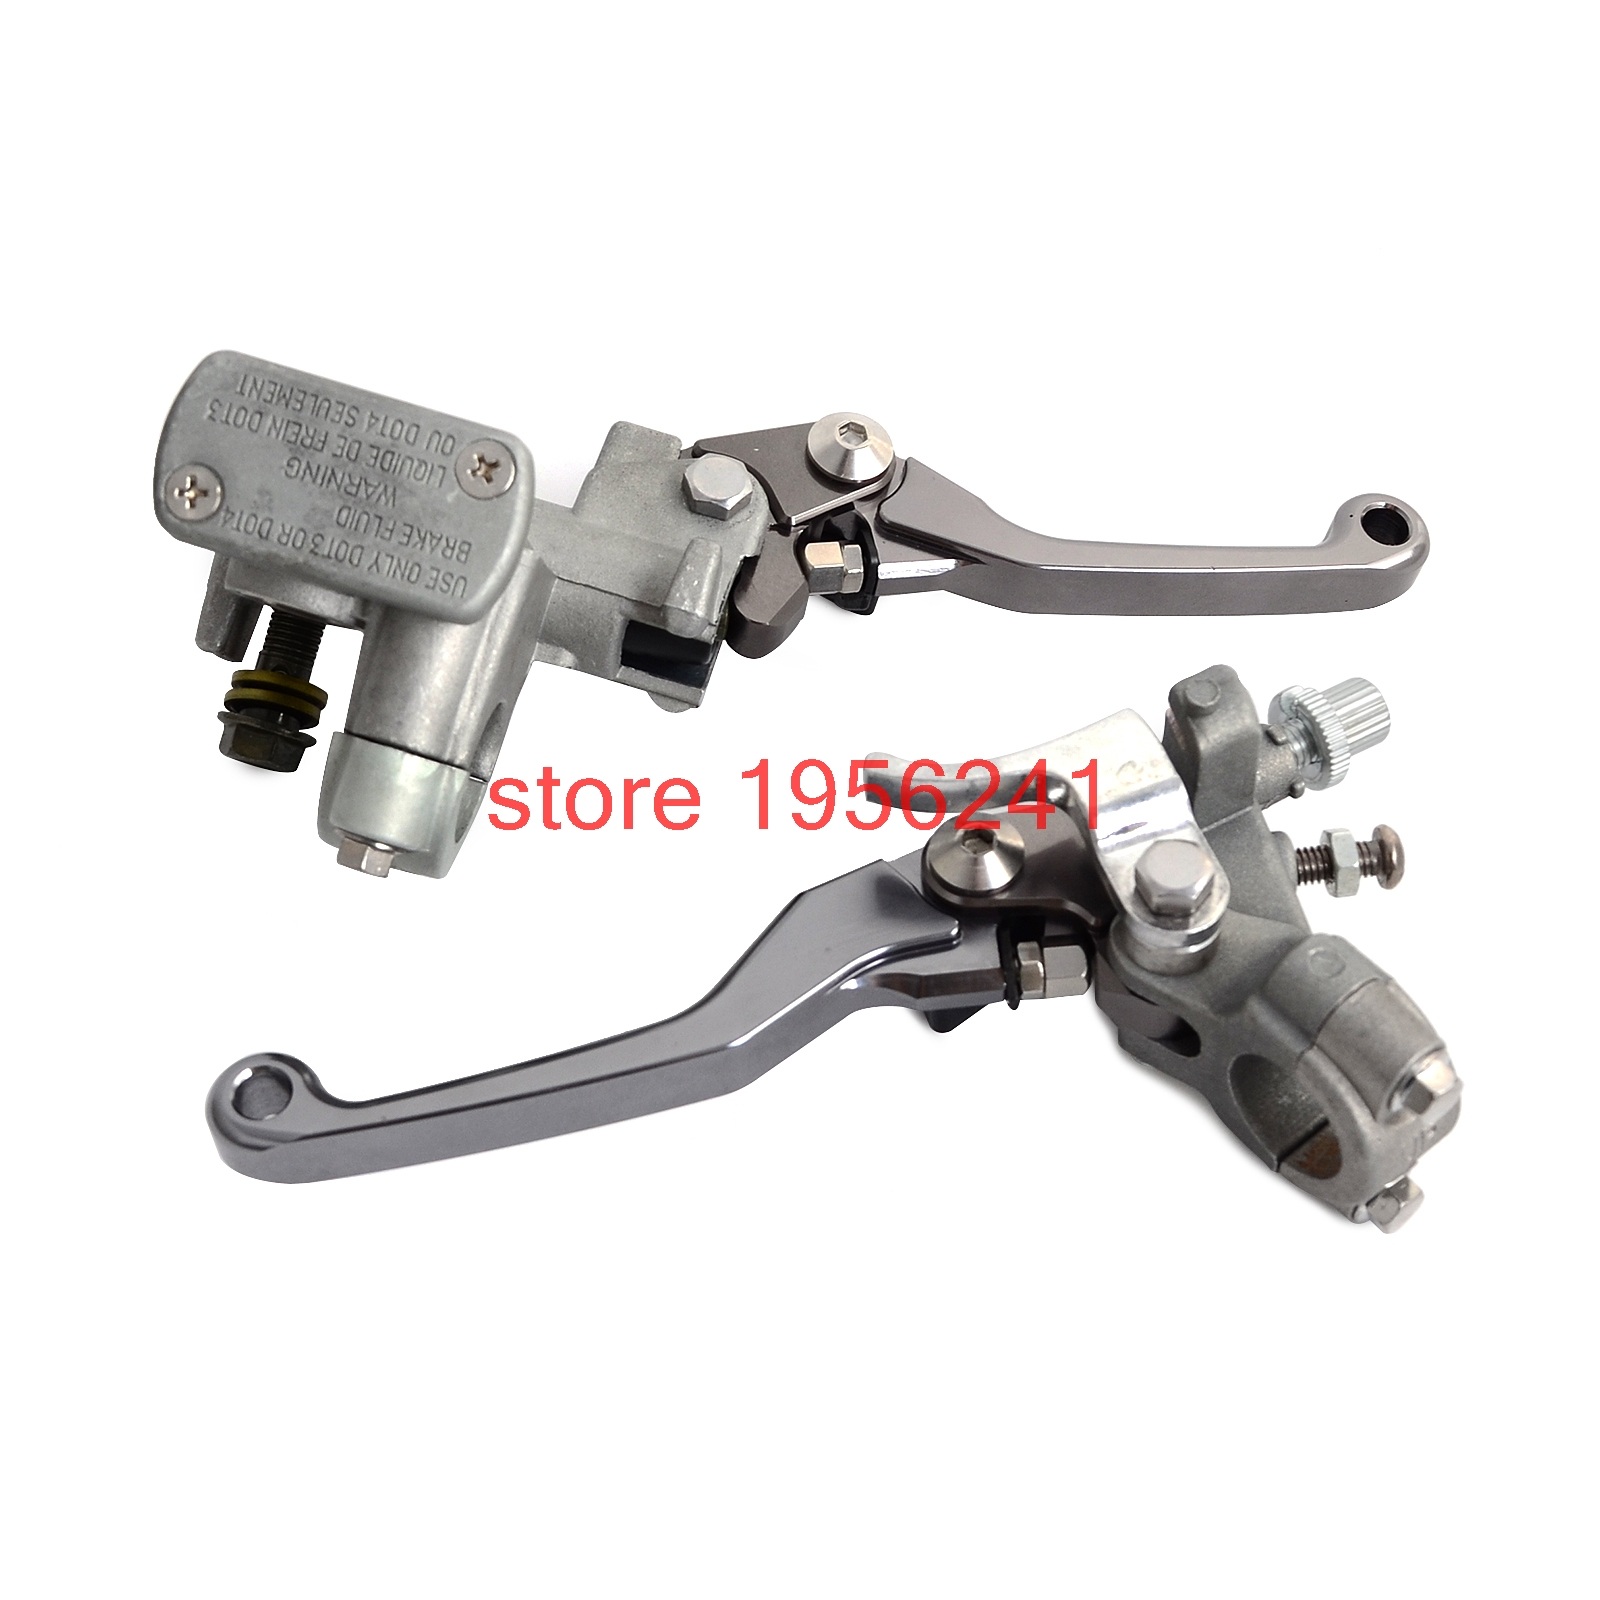 Titanium Brake Clutch Master Cylinder Lever For Honda CR125R CR250R CR500R CRF150R CRF250R CRF250X CRF450R CRF450X NEW cnc offroad mx clutch brake levers for honda cr125r 04 07 cr250r crf250r 04 06 crf450r 04 06 crf250x 04 16 crf450x 05 16